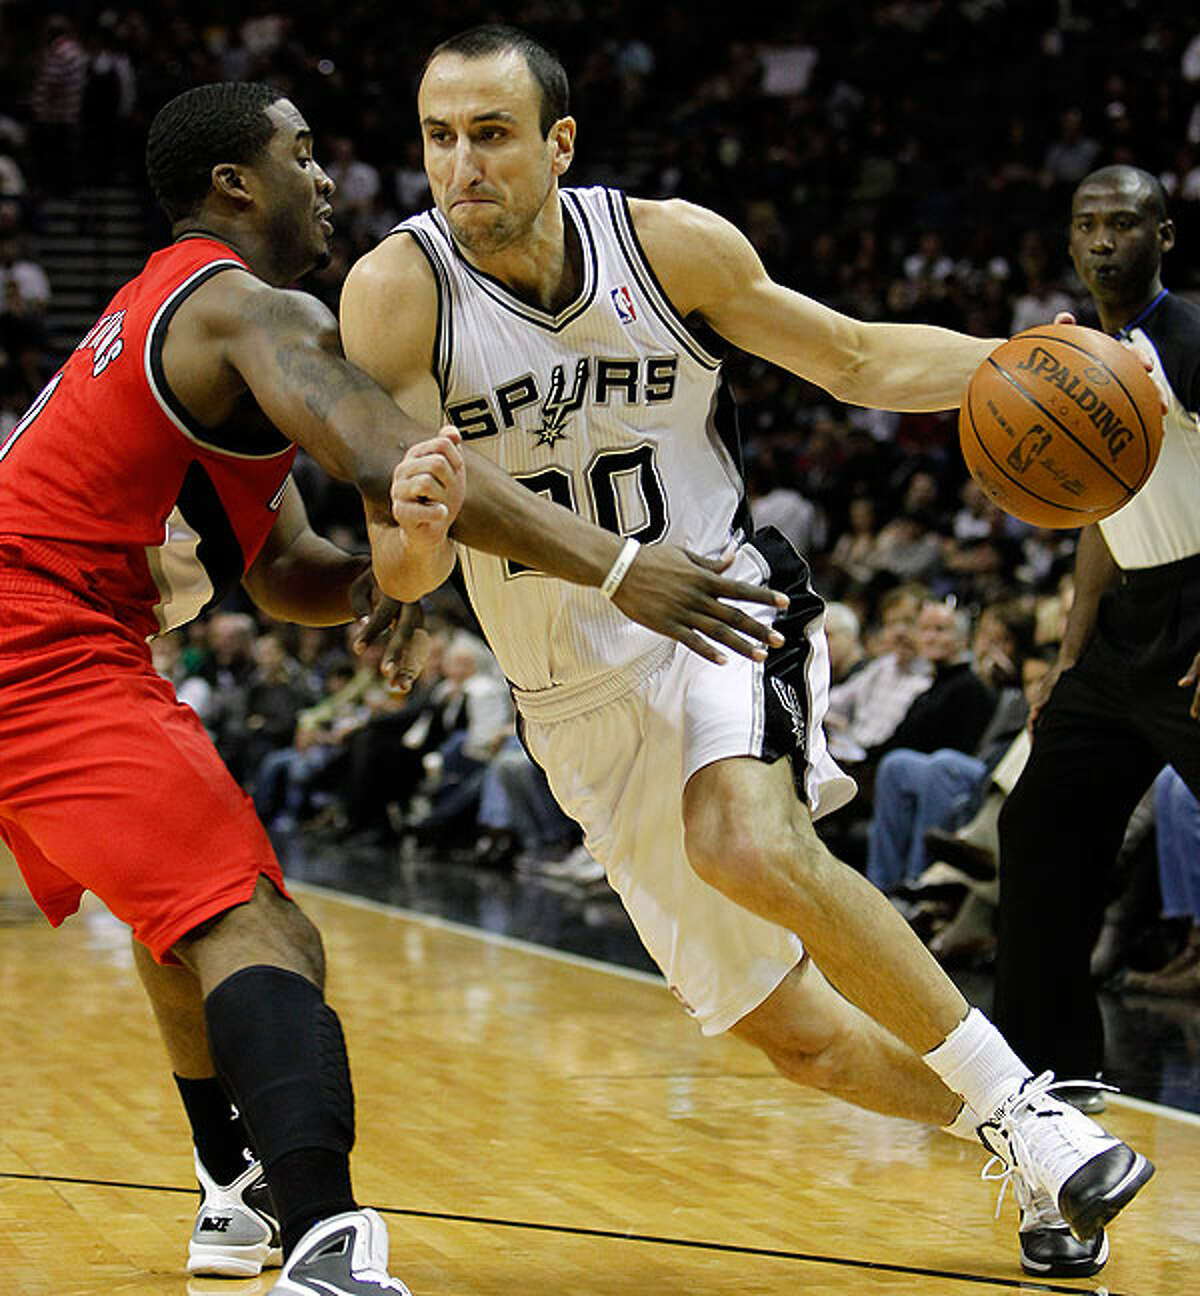 The Spurs' Manu Ginobili drives to the basket against the Trail Blazers' Wesley Matthews on Sunday.